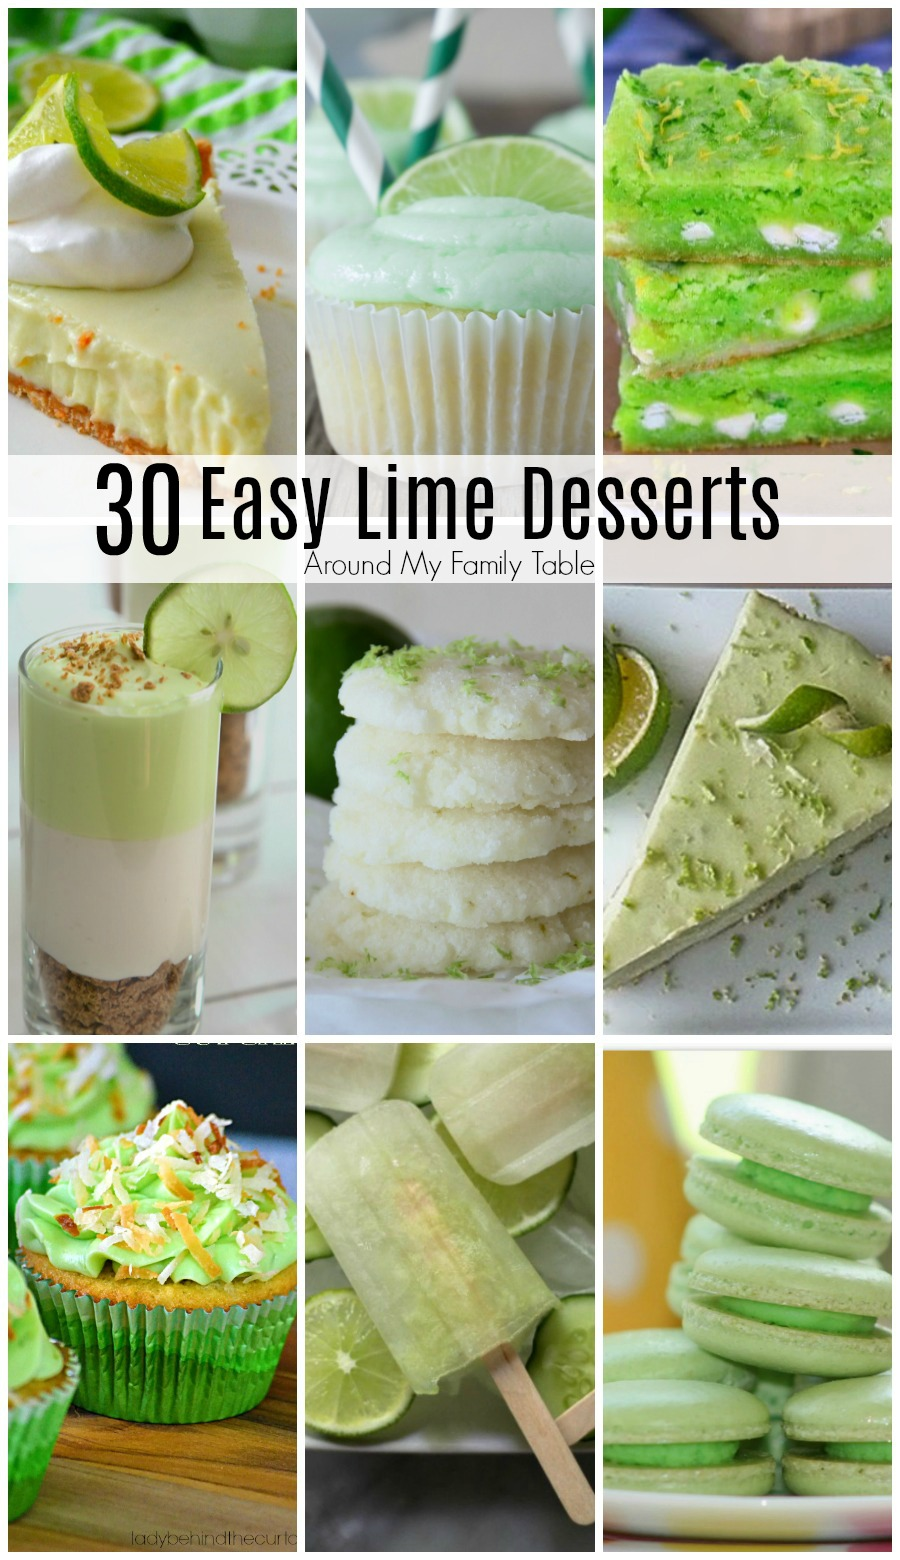 These 30 easy lime desserts are sure to hit the spot this summer when you crave a cool treat.